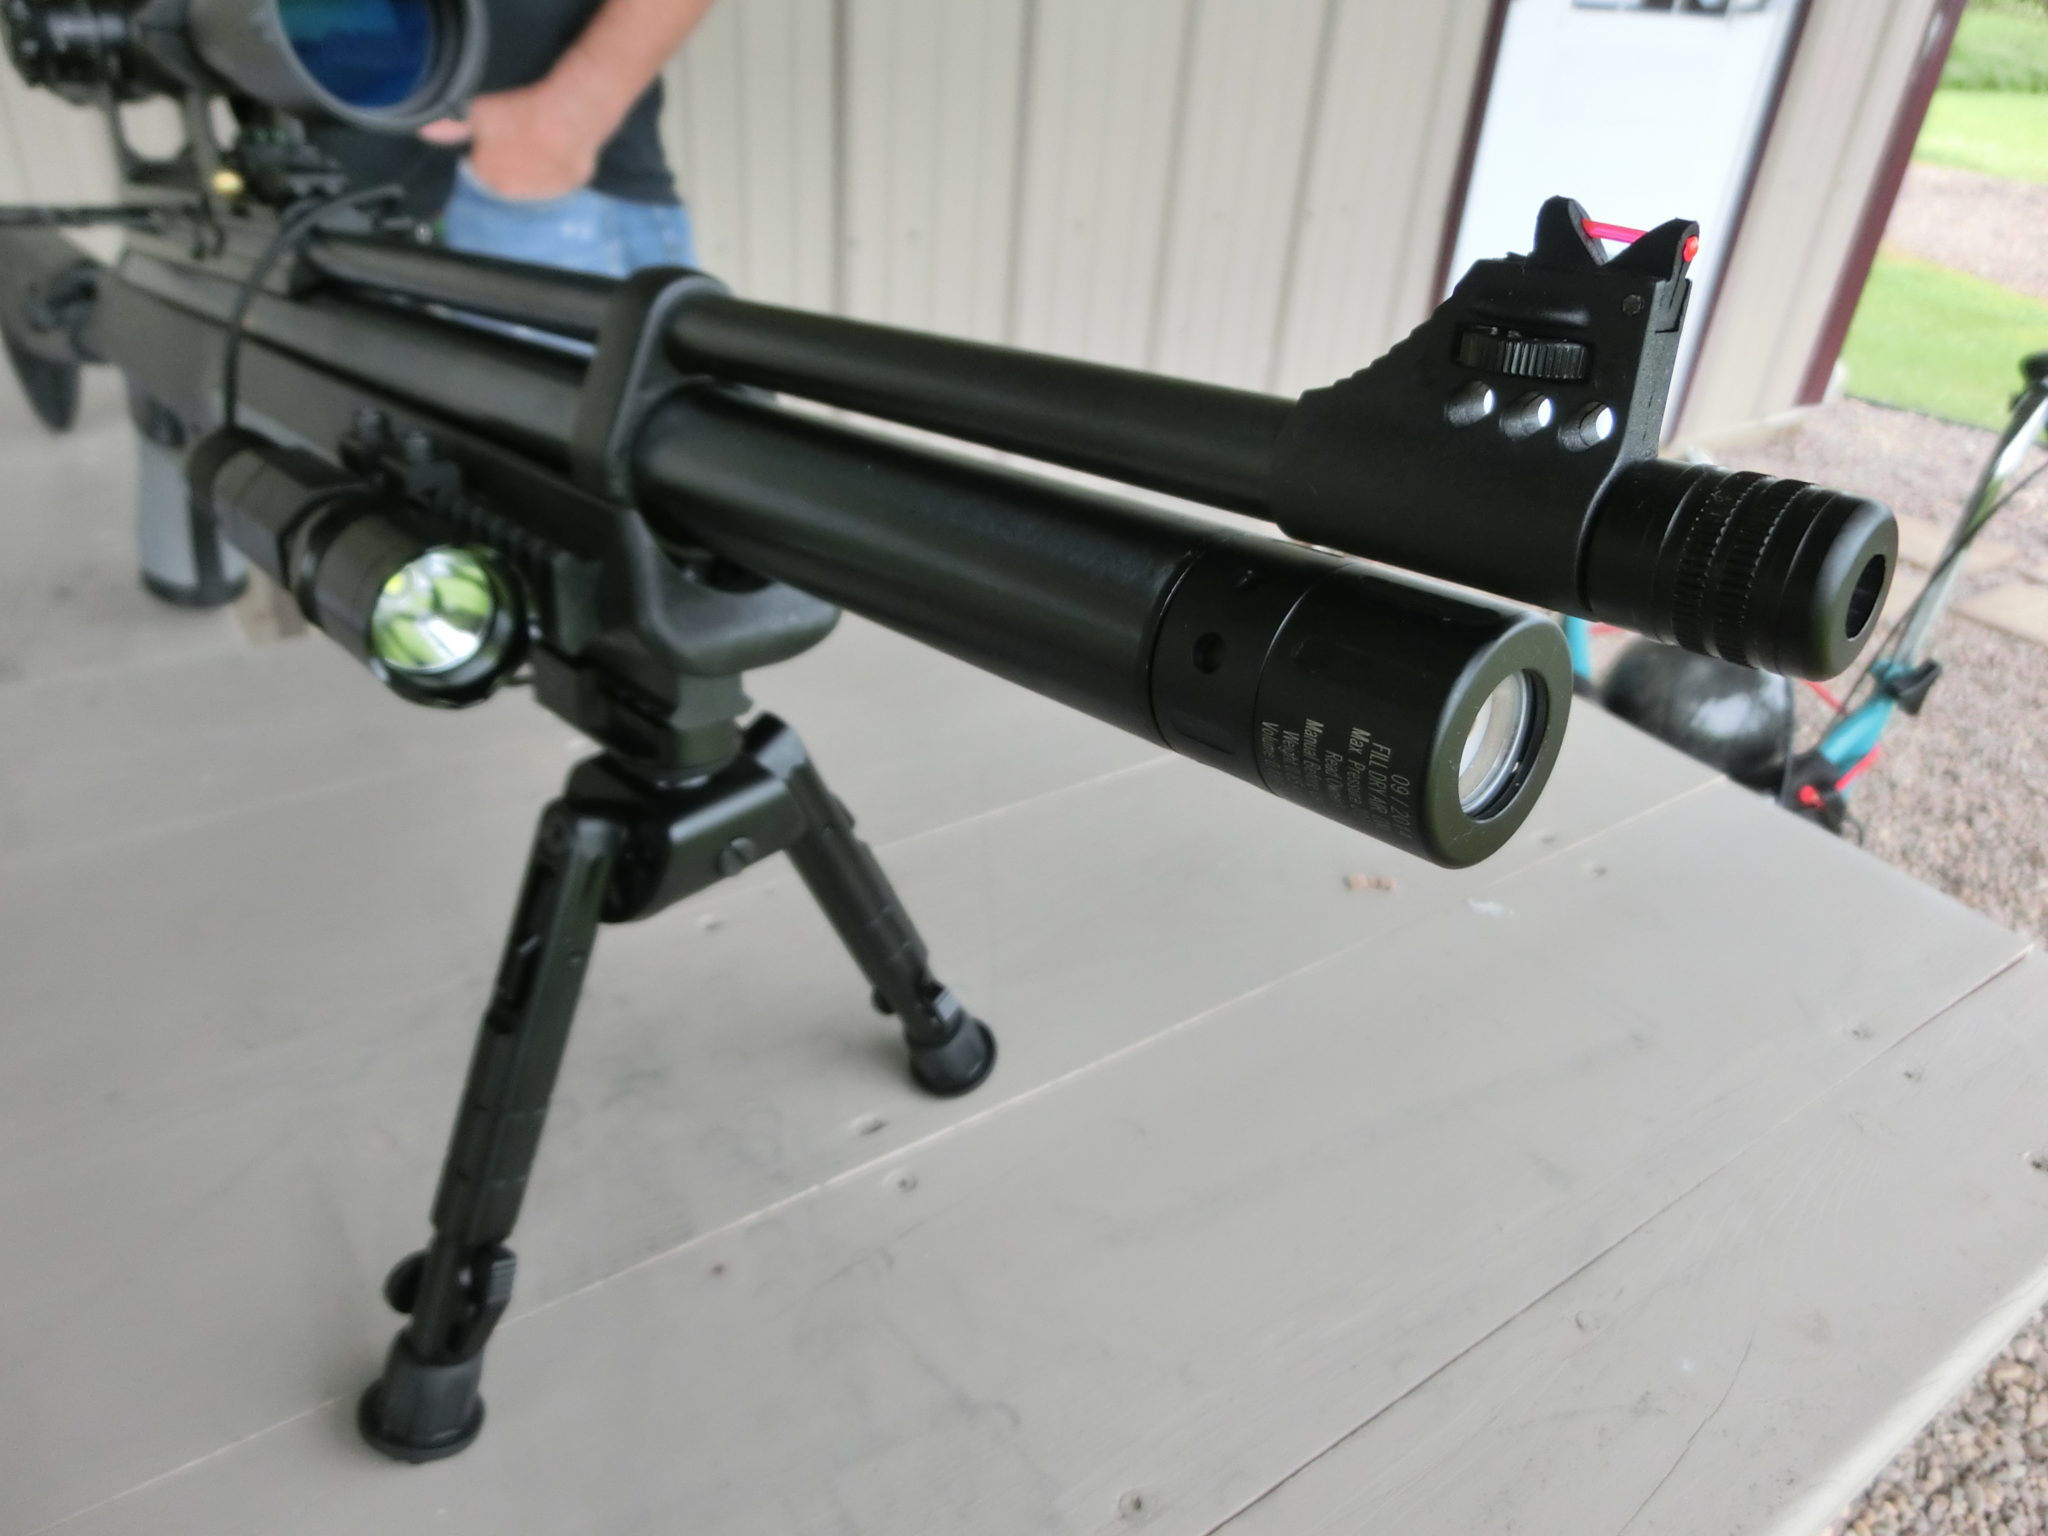 Hatsan AT44-10 TACT with UTG Recon Bipod and TO Flashlight